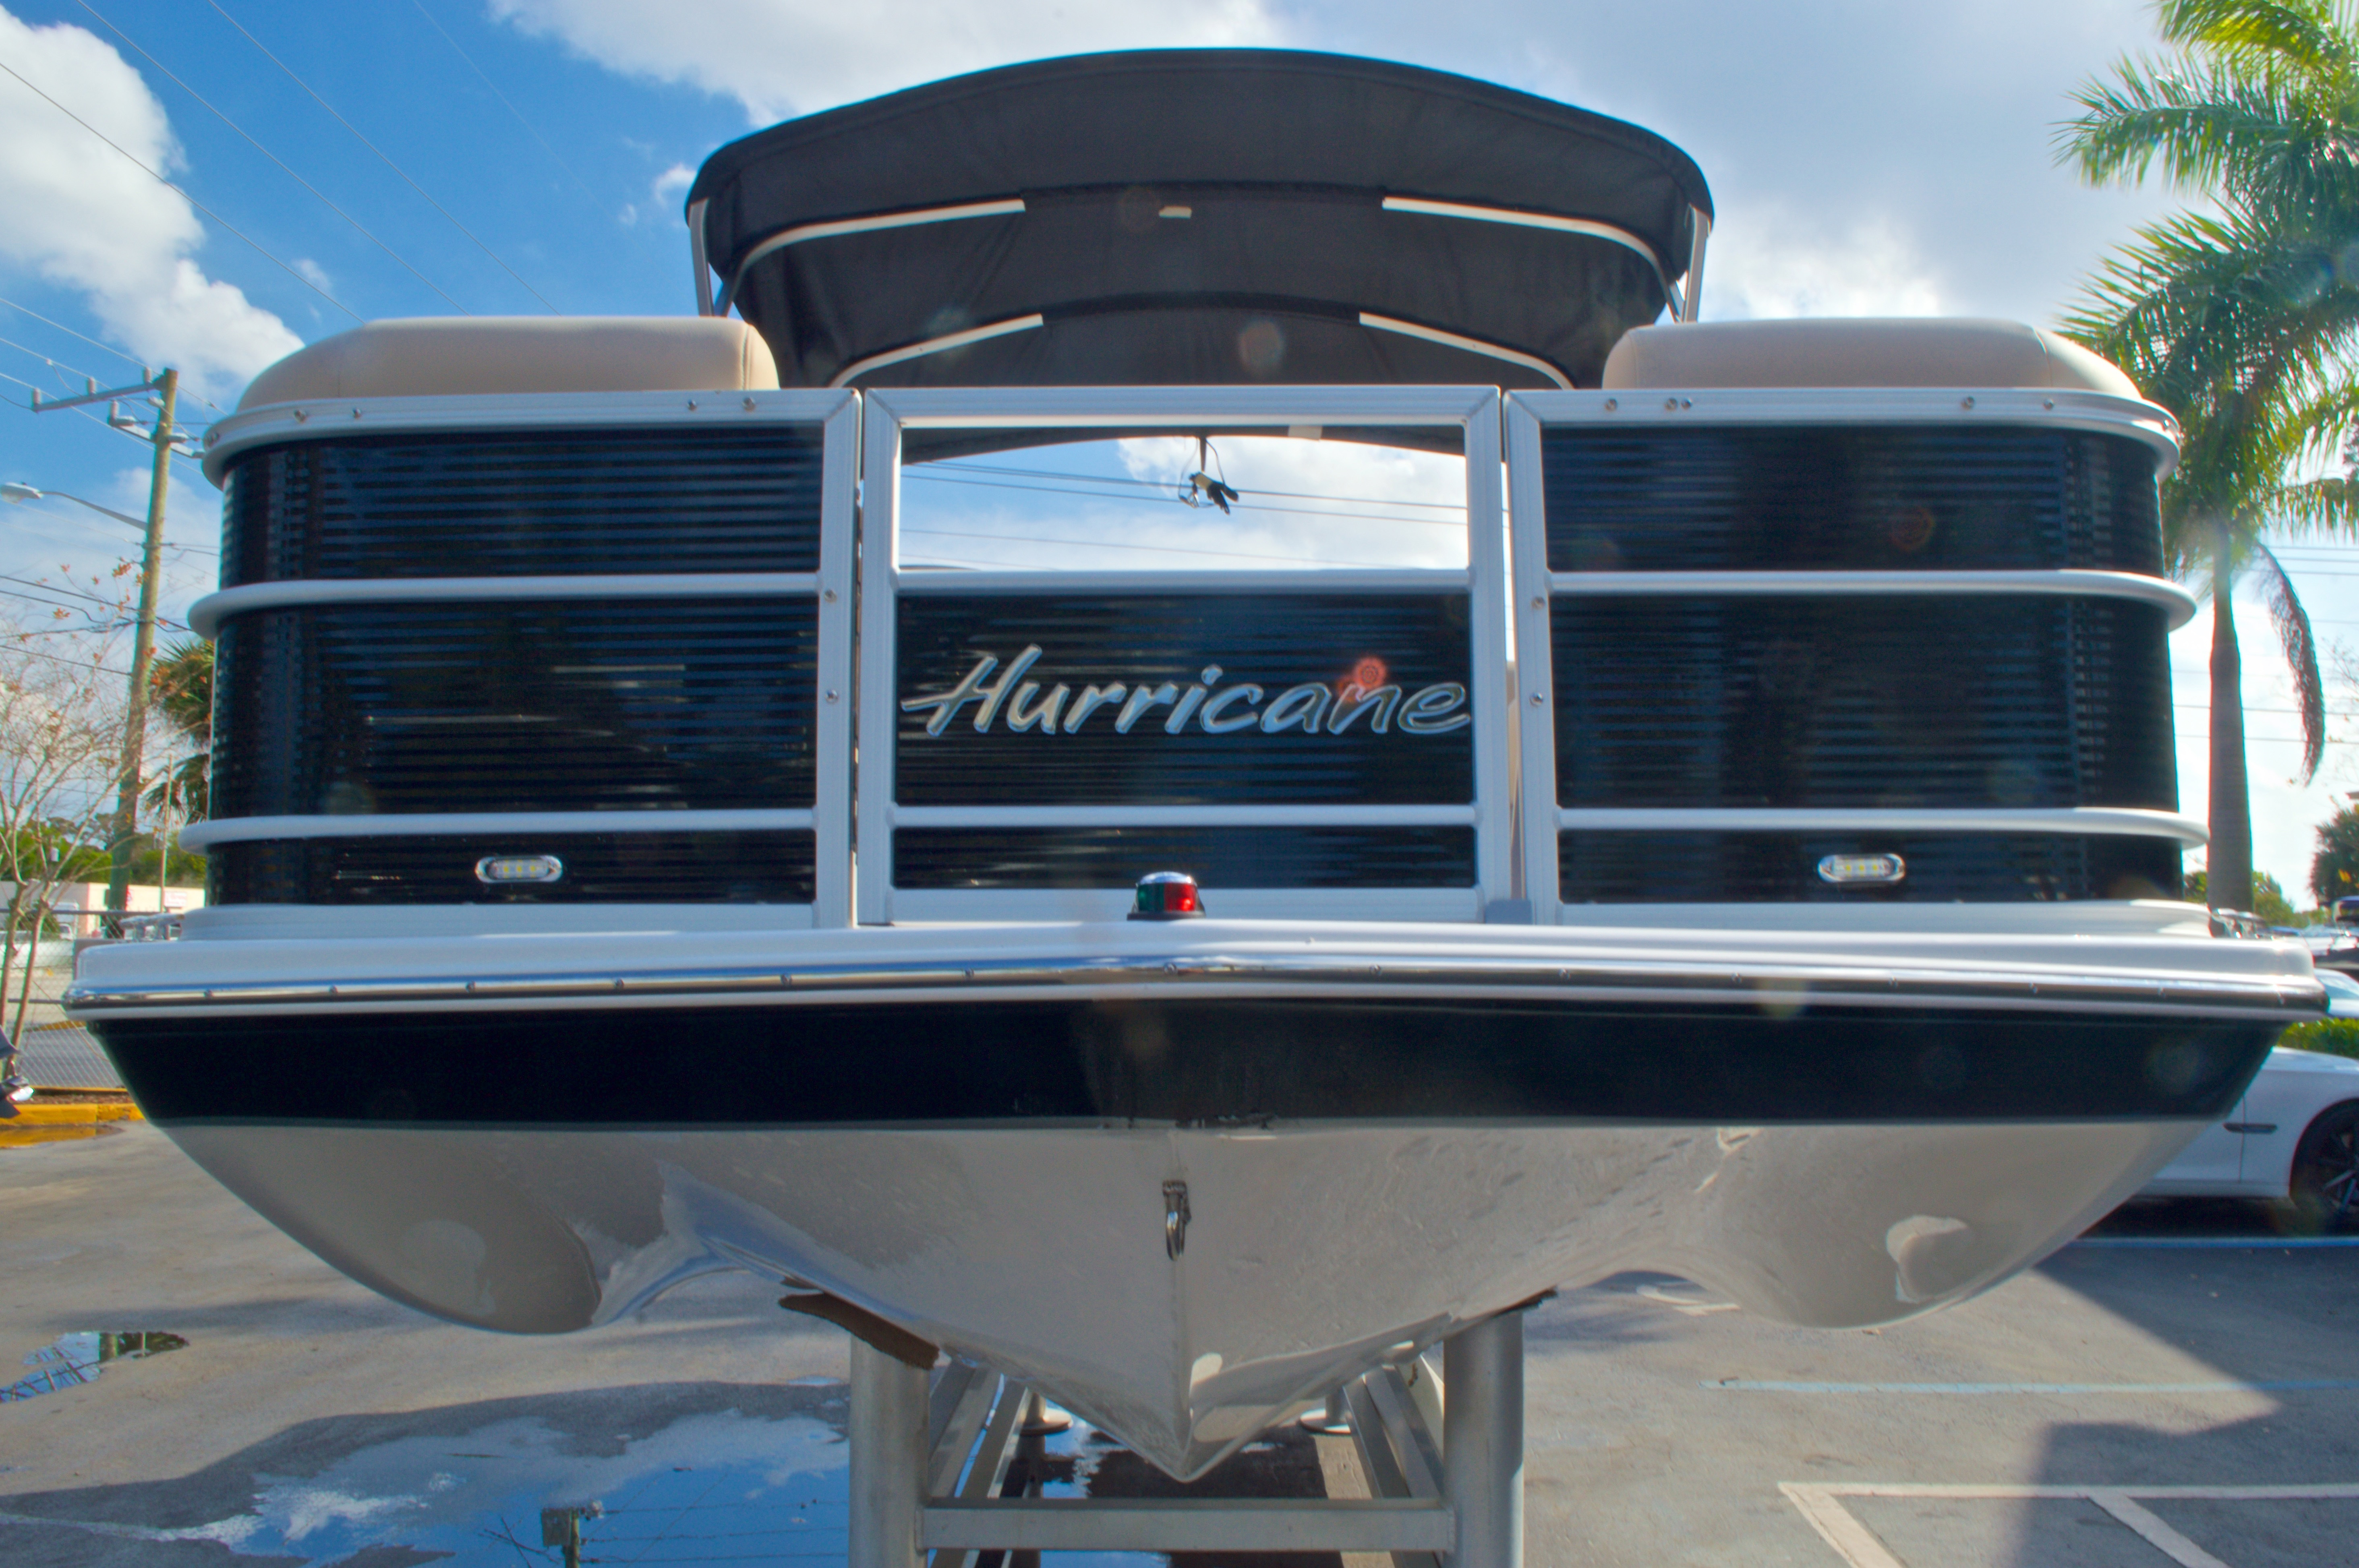 Thumbnail 3 for New 2016 Hurricane Fundeck FD 196 OB boat for sale in West Palm Beach, FL